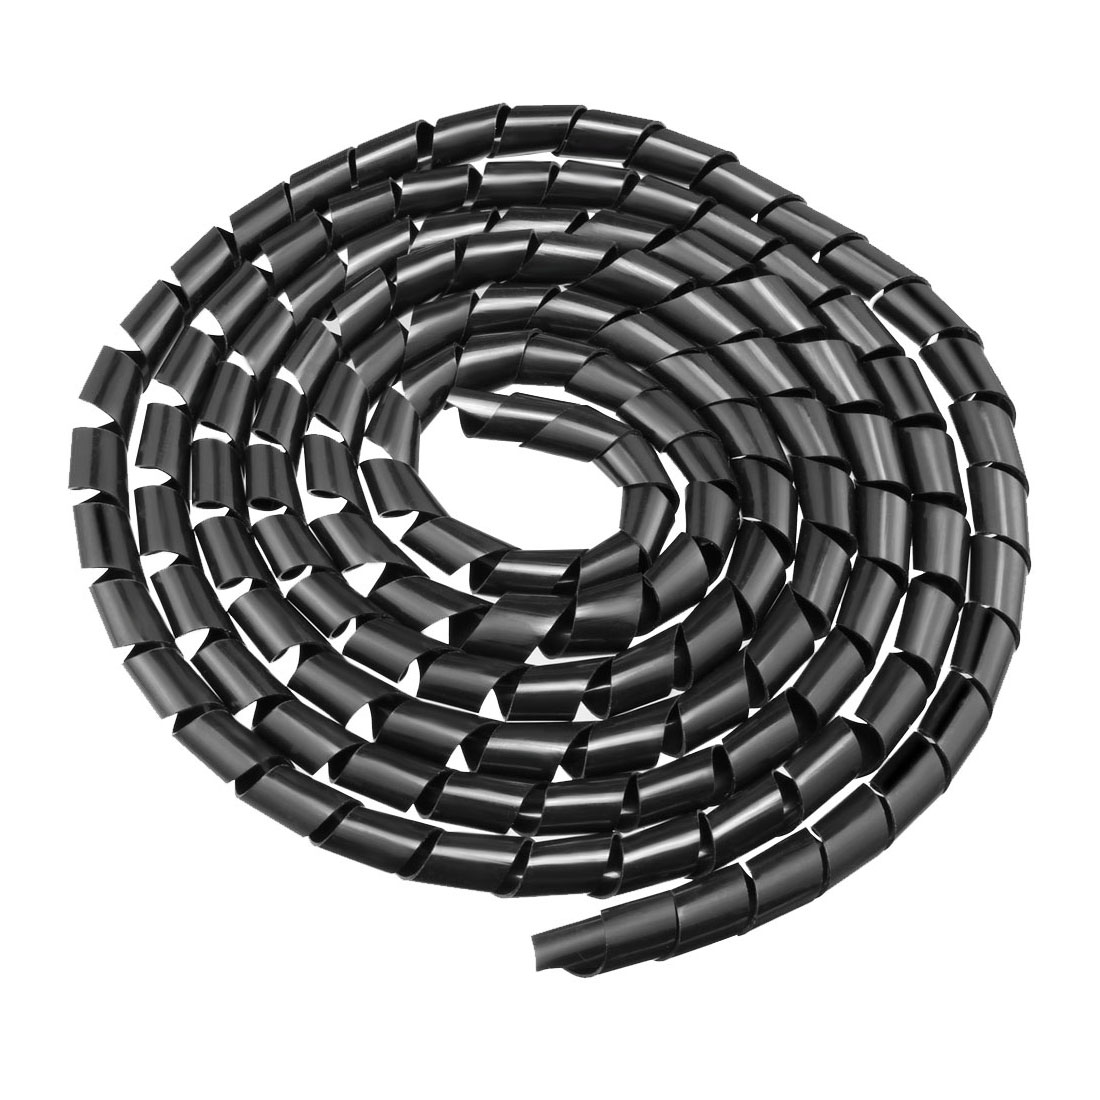 16mm Flexible Spiral Tube Cable Wire Wrap Computer Manage Cord 3Meter Black